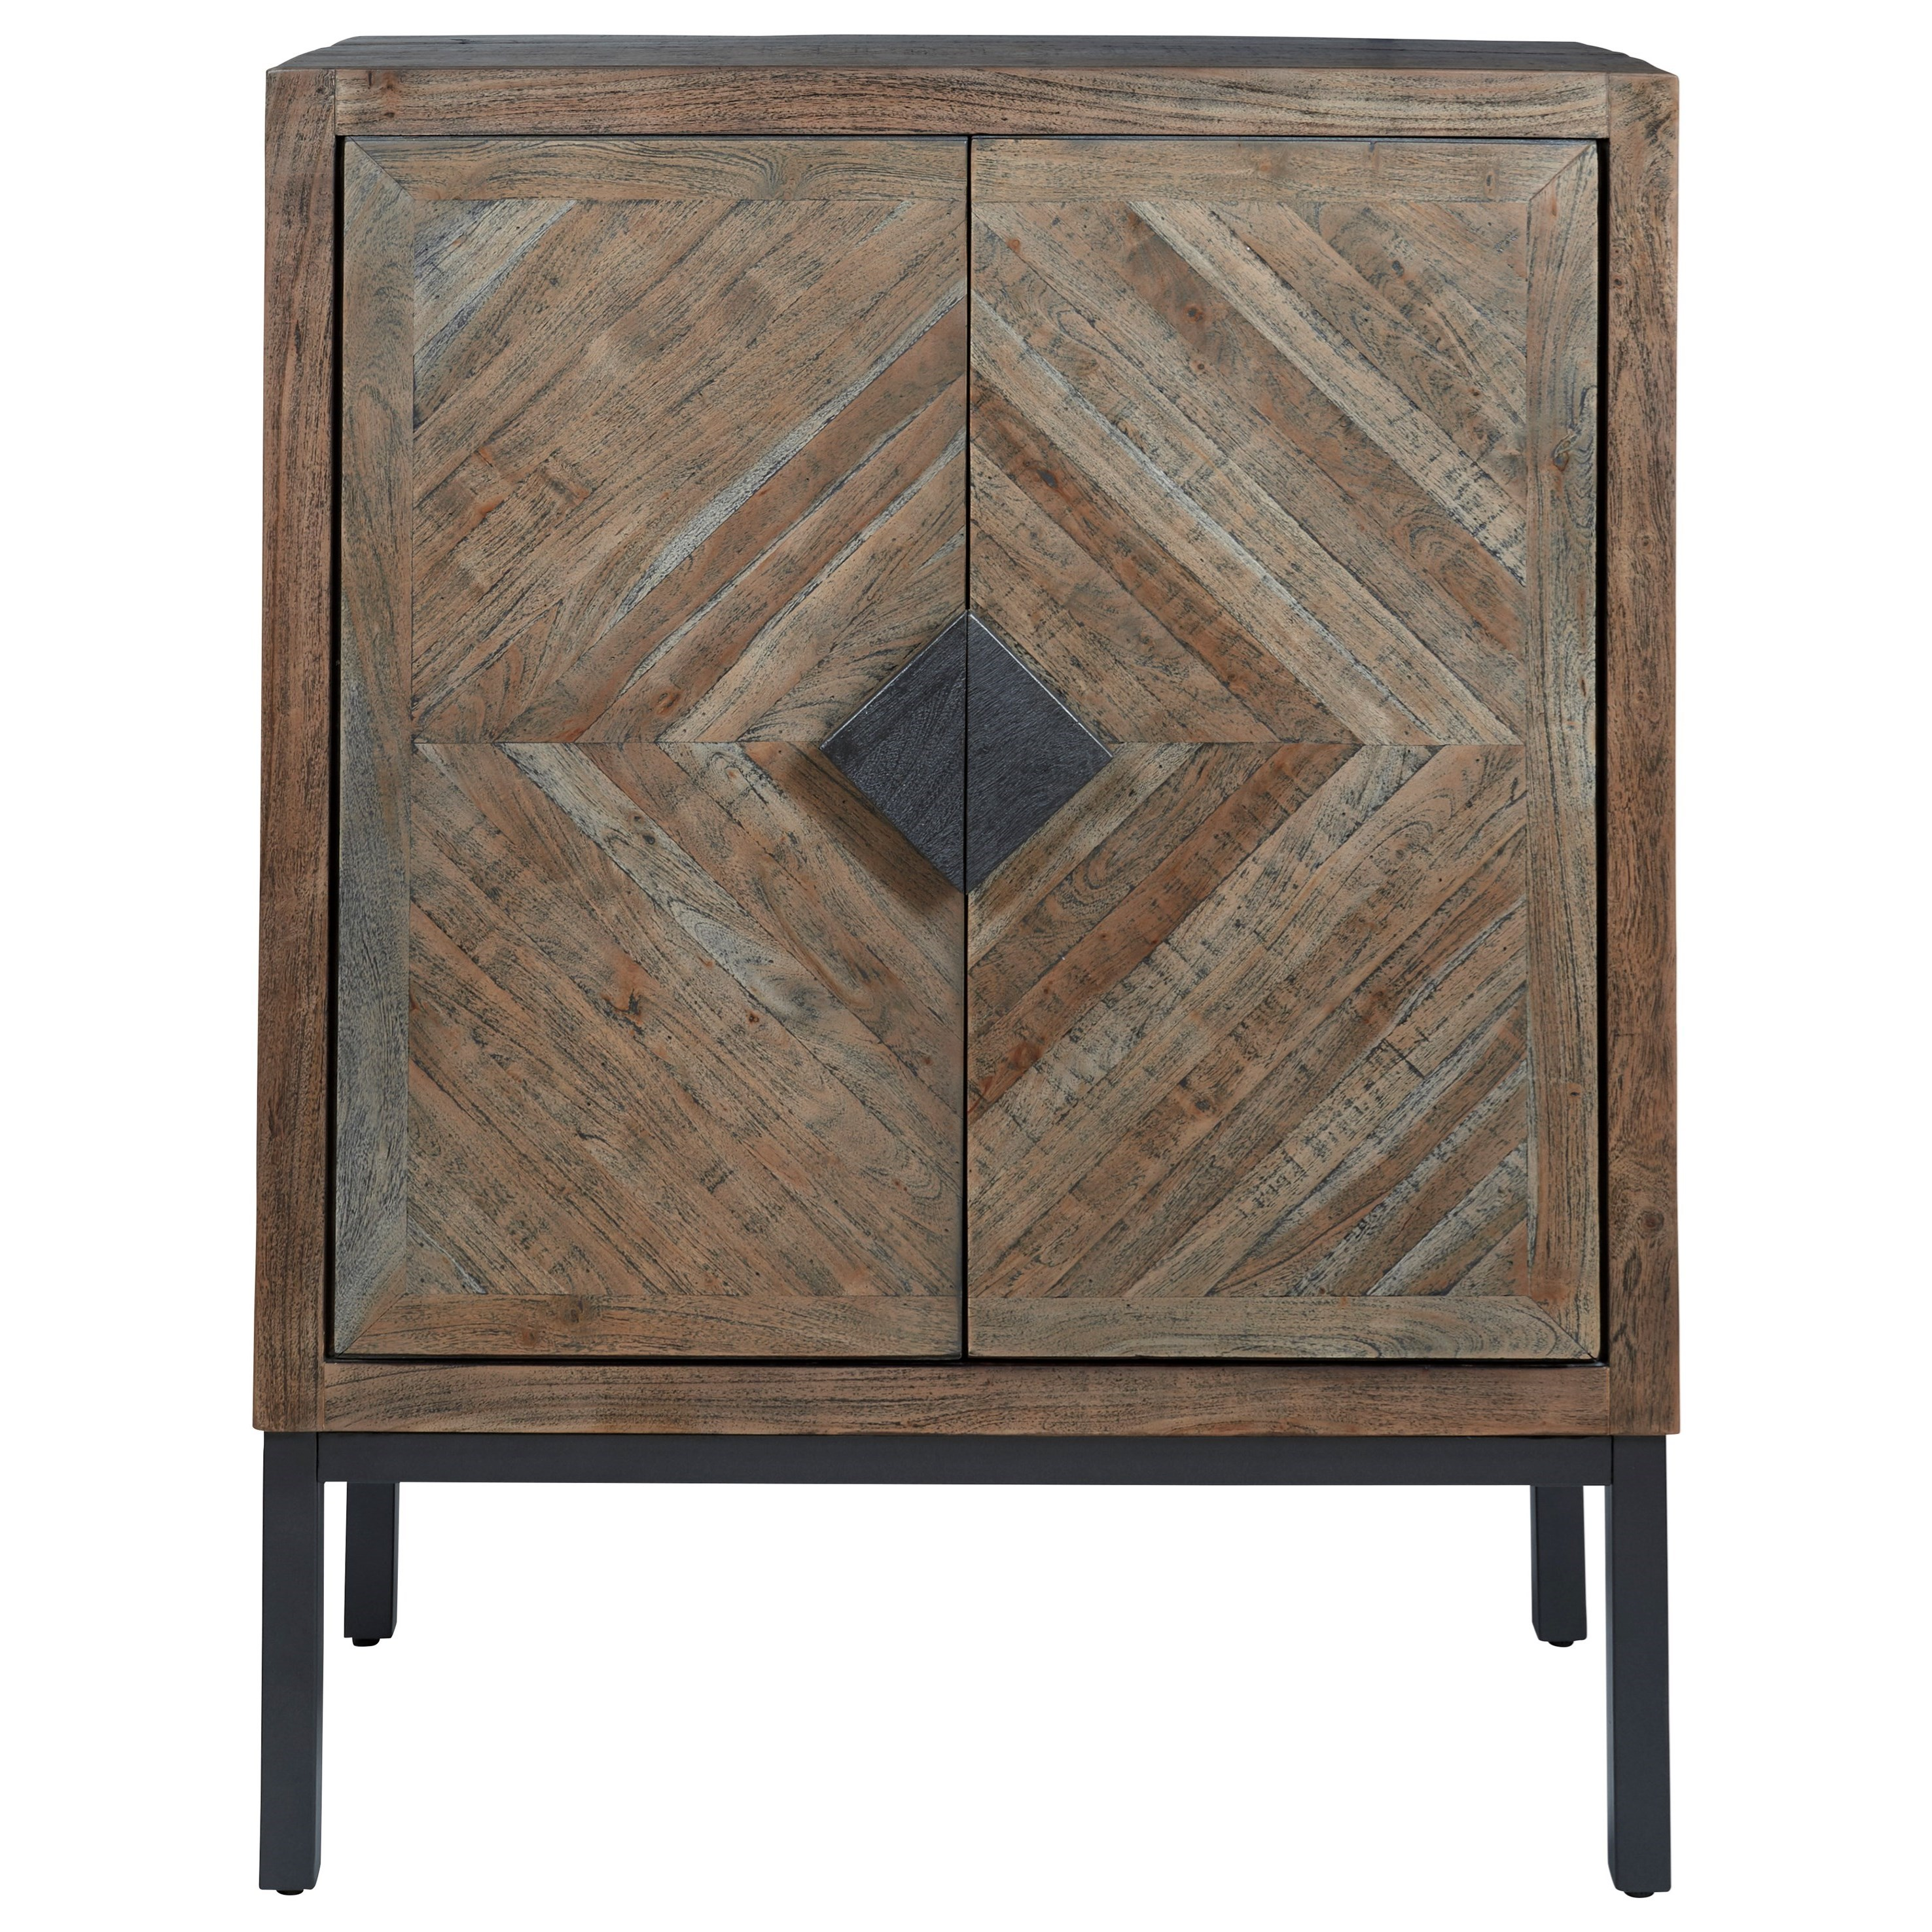 Signature Design By Ashley Premridge Rustic Bar Cabinet With Diamond Pattern Wood Doors And Metal Base Royal Furniture Bar Cabinets